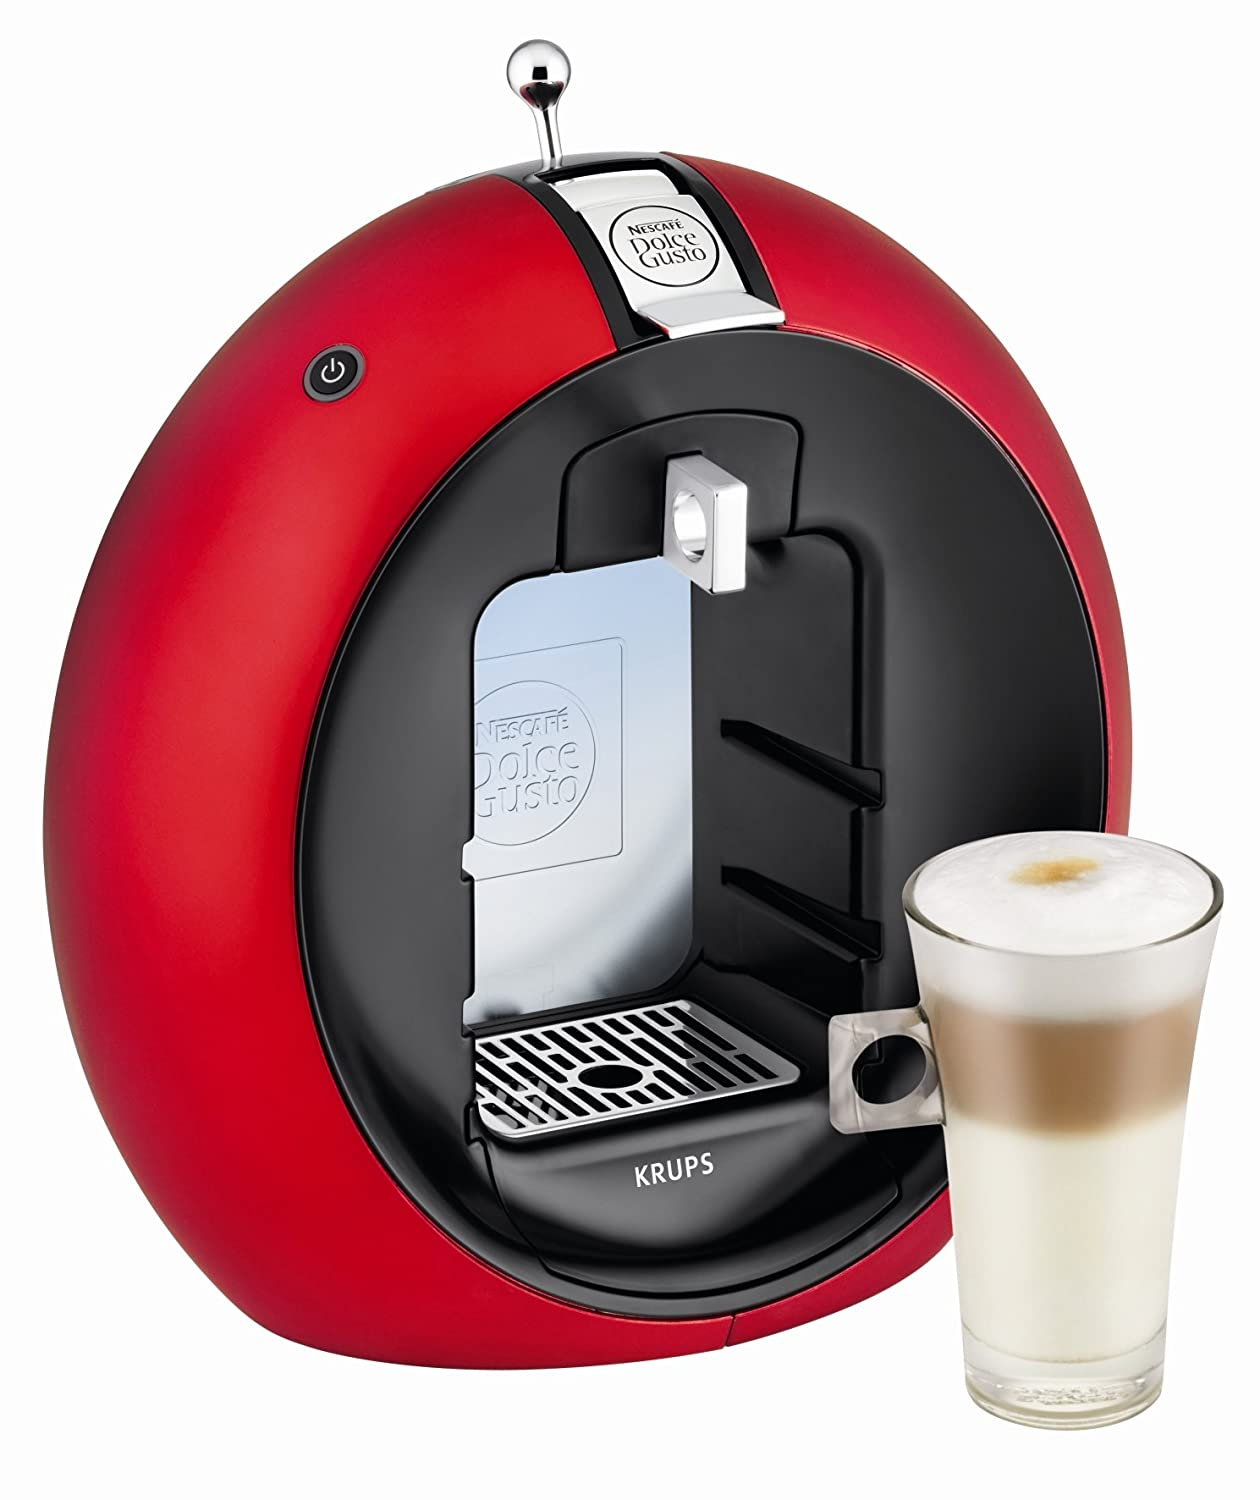 krups kp5006 nescafe dolce gusto circolo coffee machine. Black Bedroom Furniture Sets. Home Design Ideas